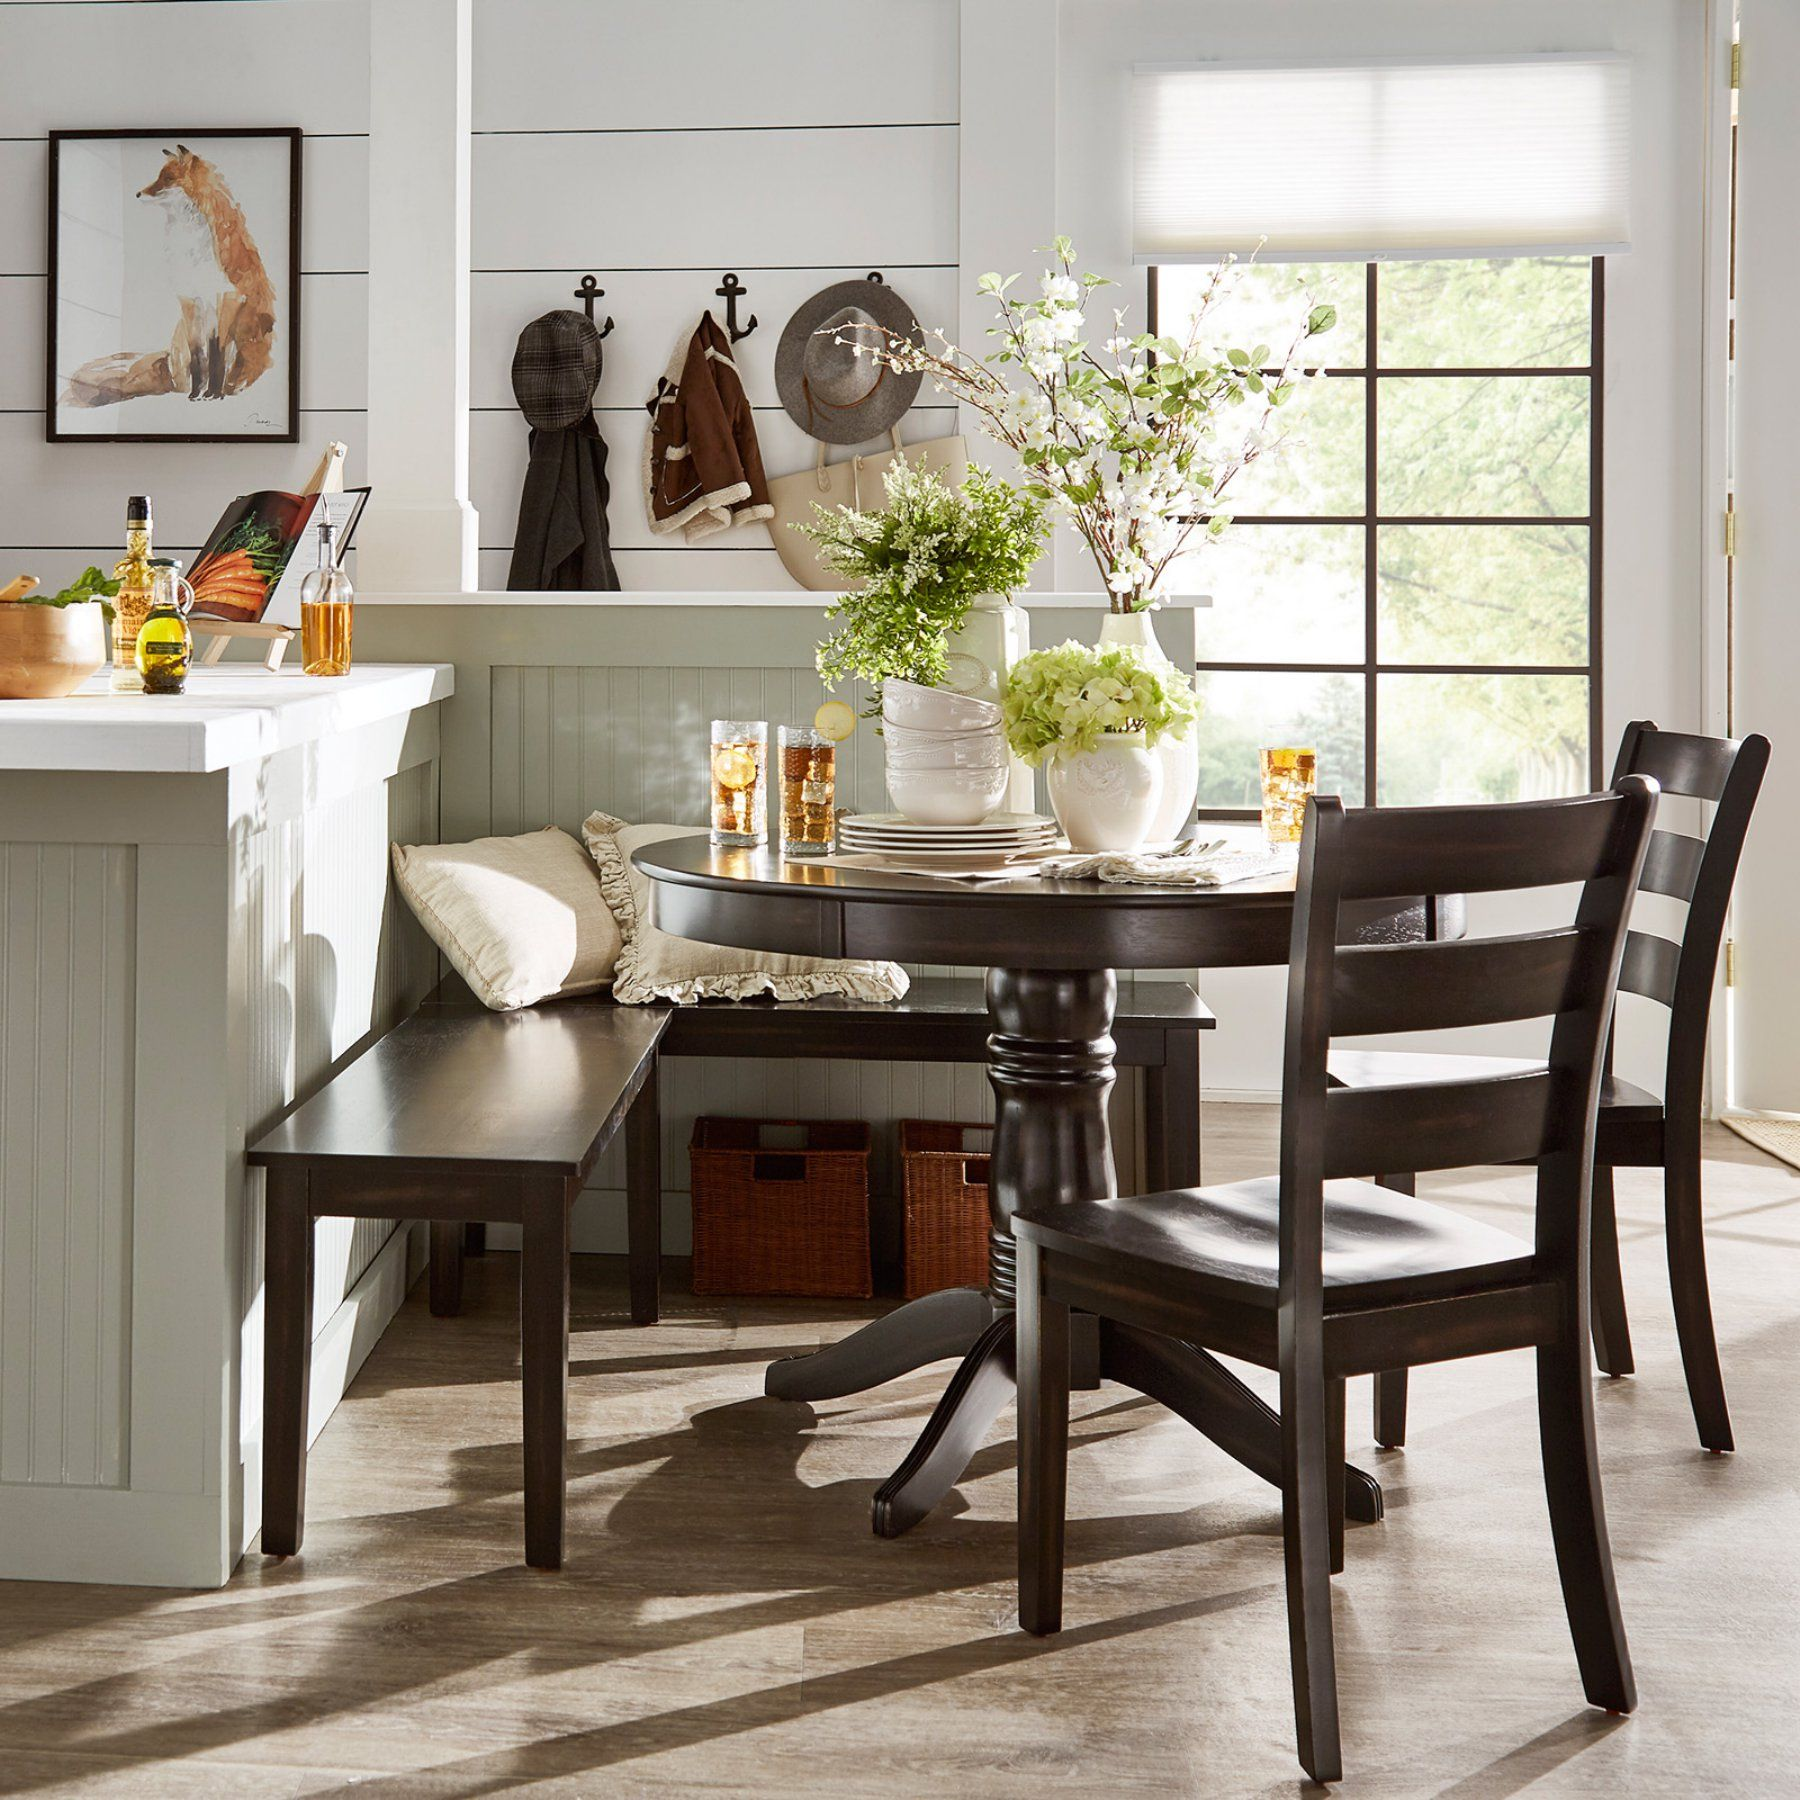 Weston Home Lexington 5 Piece Breakfast Nook Round Dining Set Antique Black 68e55742bk5nkc4 With Images